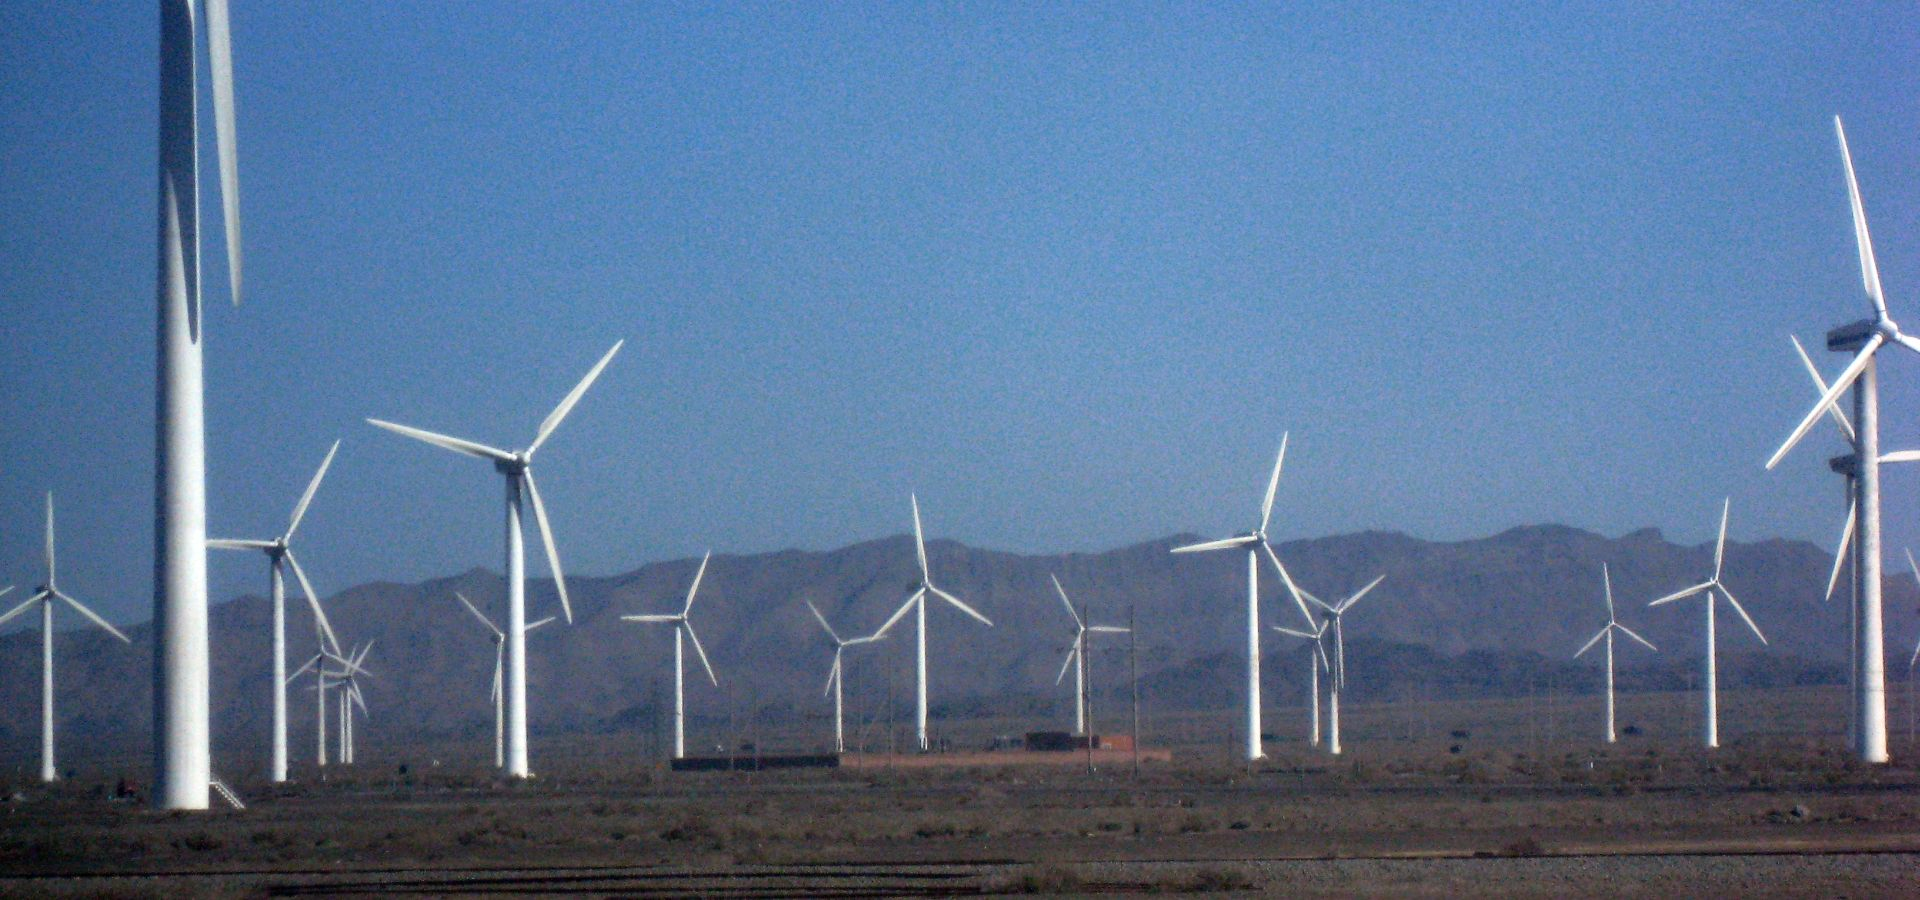 Wind farm in Xinjiang, China, on a sunny day.